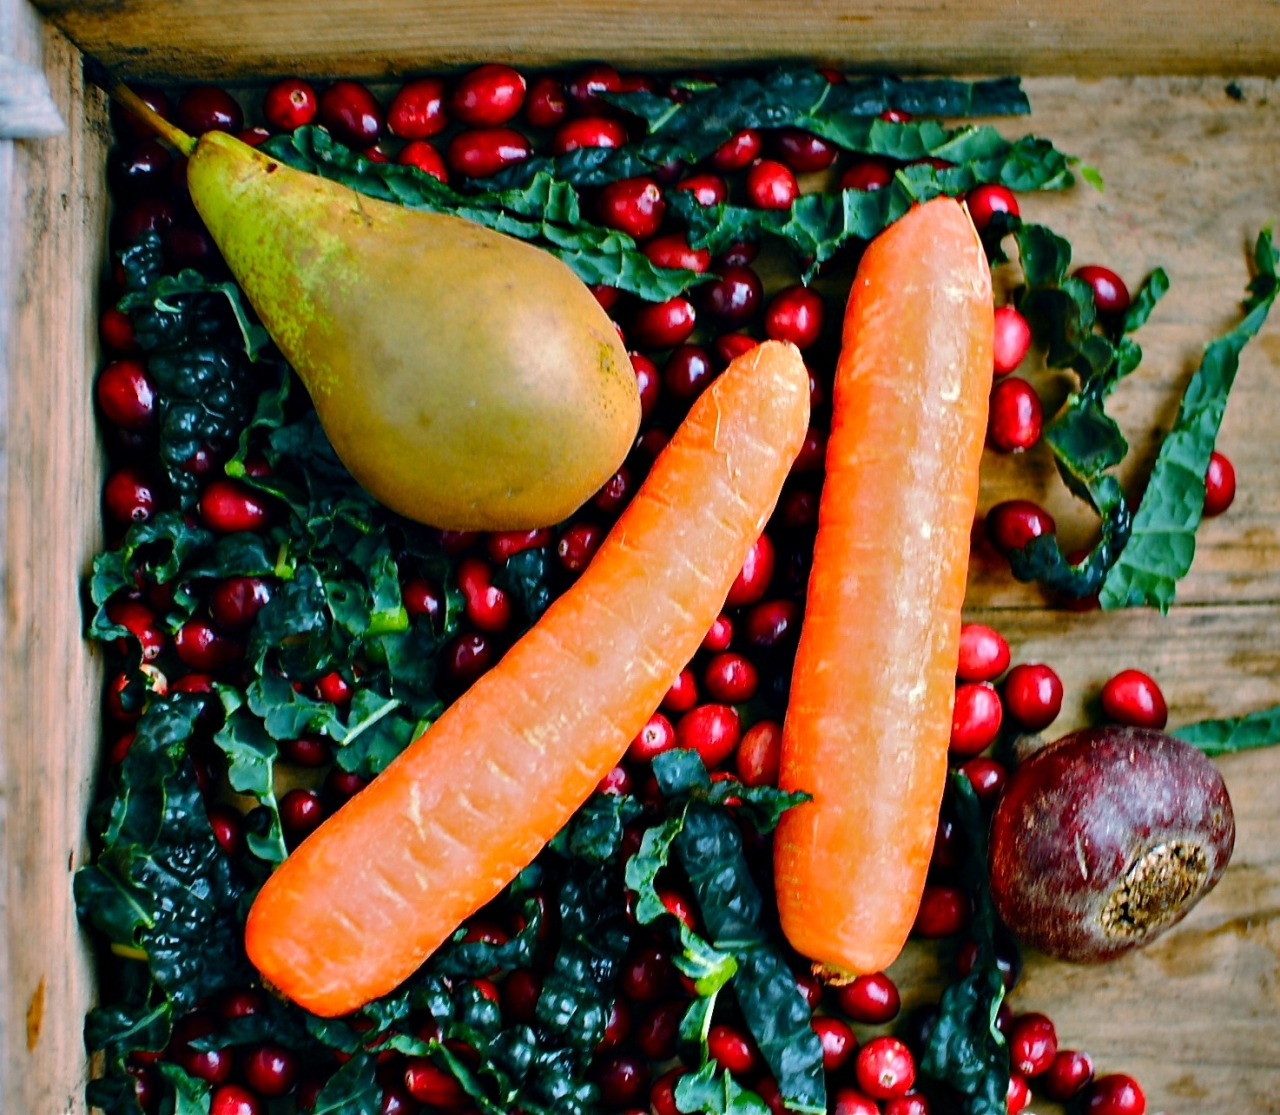 cranberries-kale-carrots-image